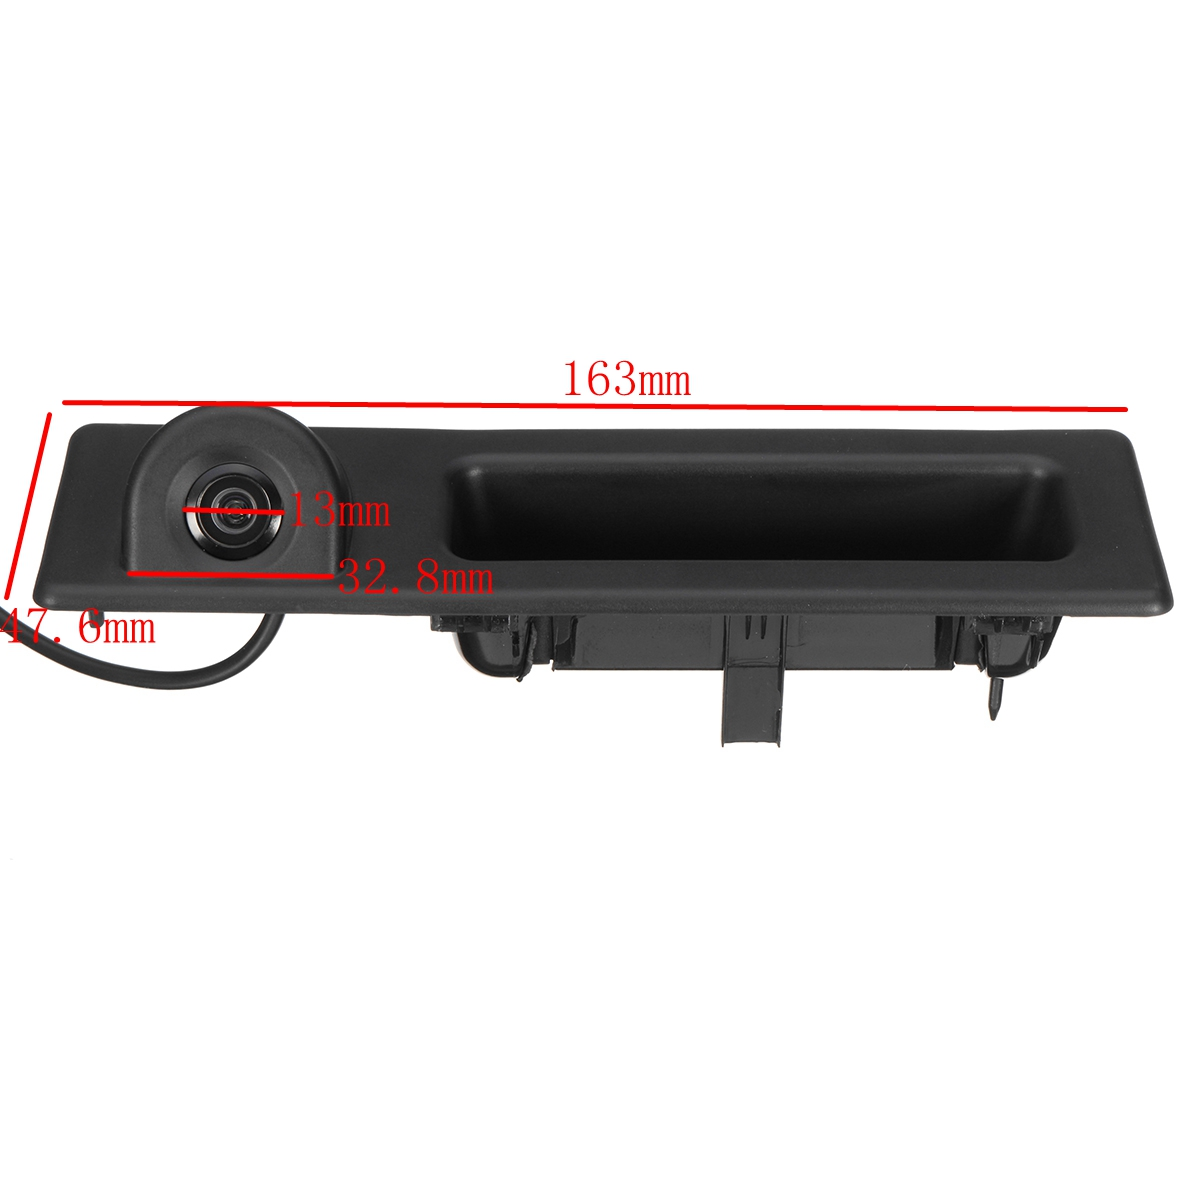 Car Truck Handle CCD Reversing Rear View Camera For BMW 3 Series F30 F31 F34 GT